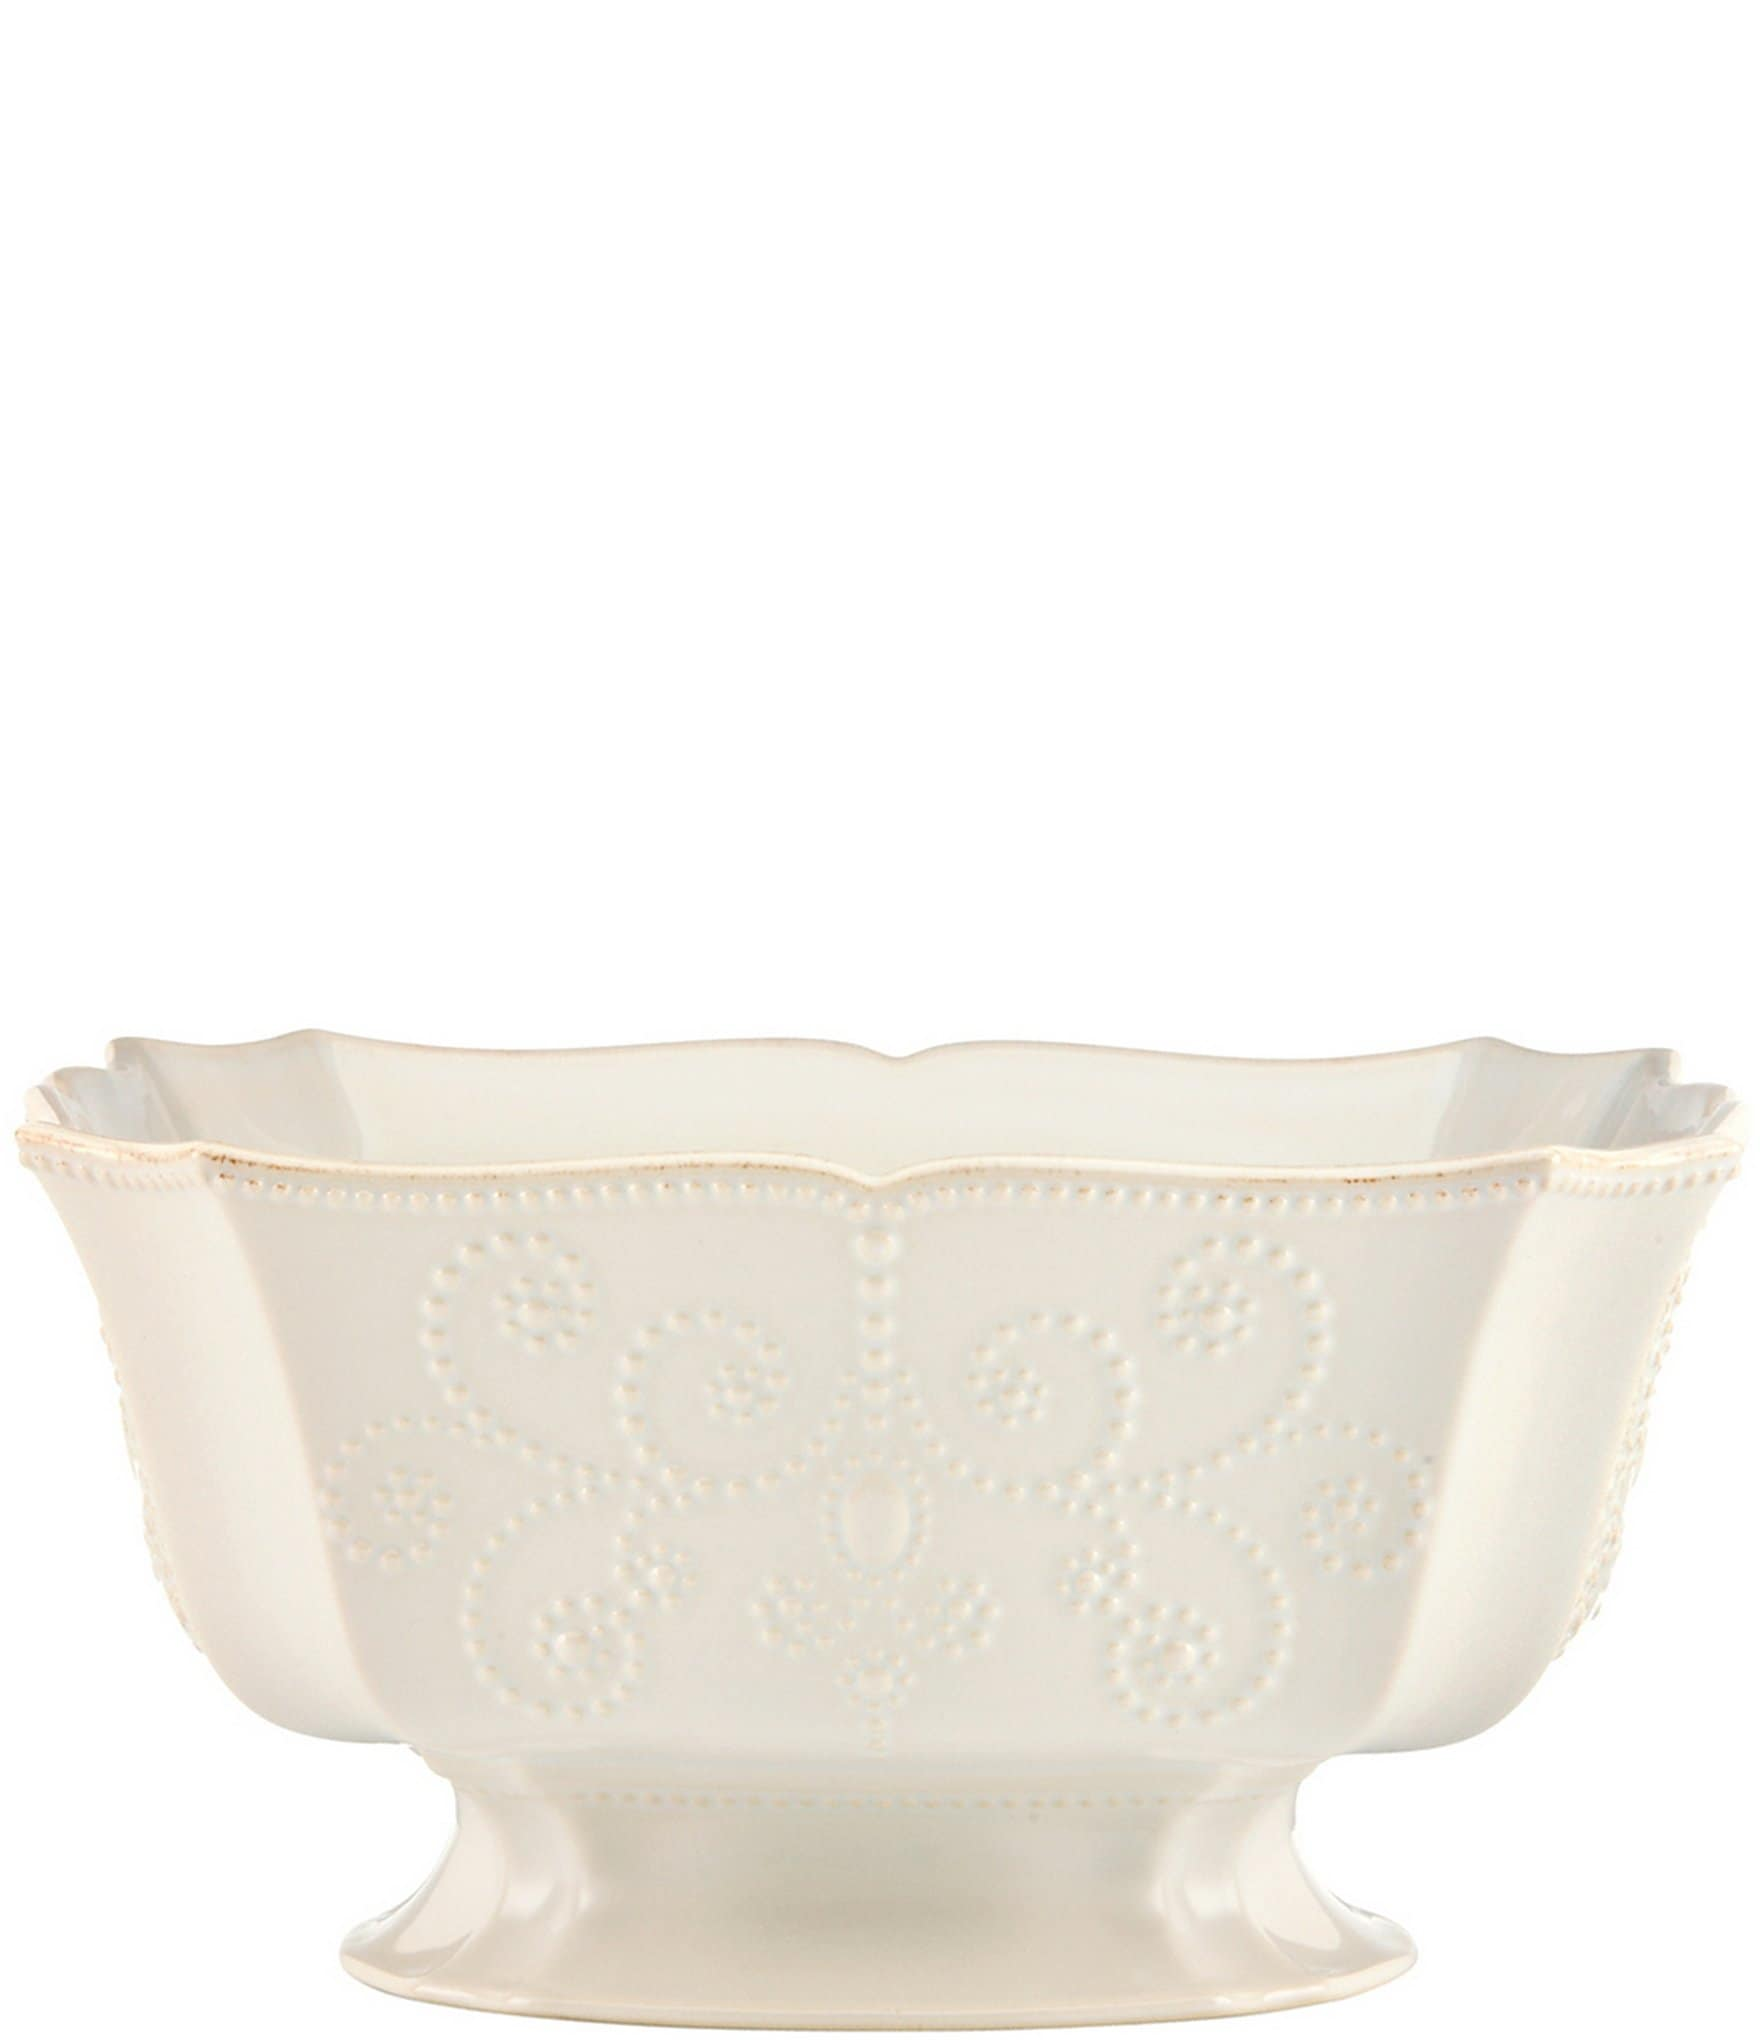 Lenox french perle scalloped stoneware centerpiece bowl